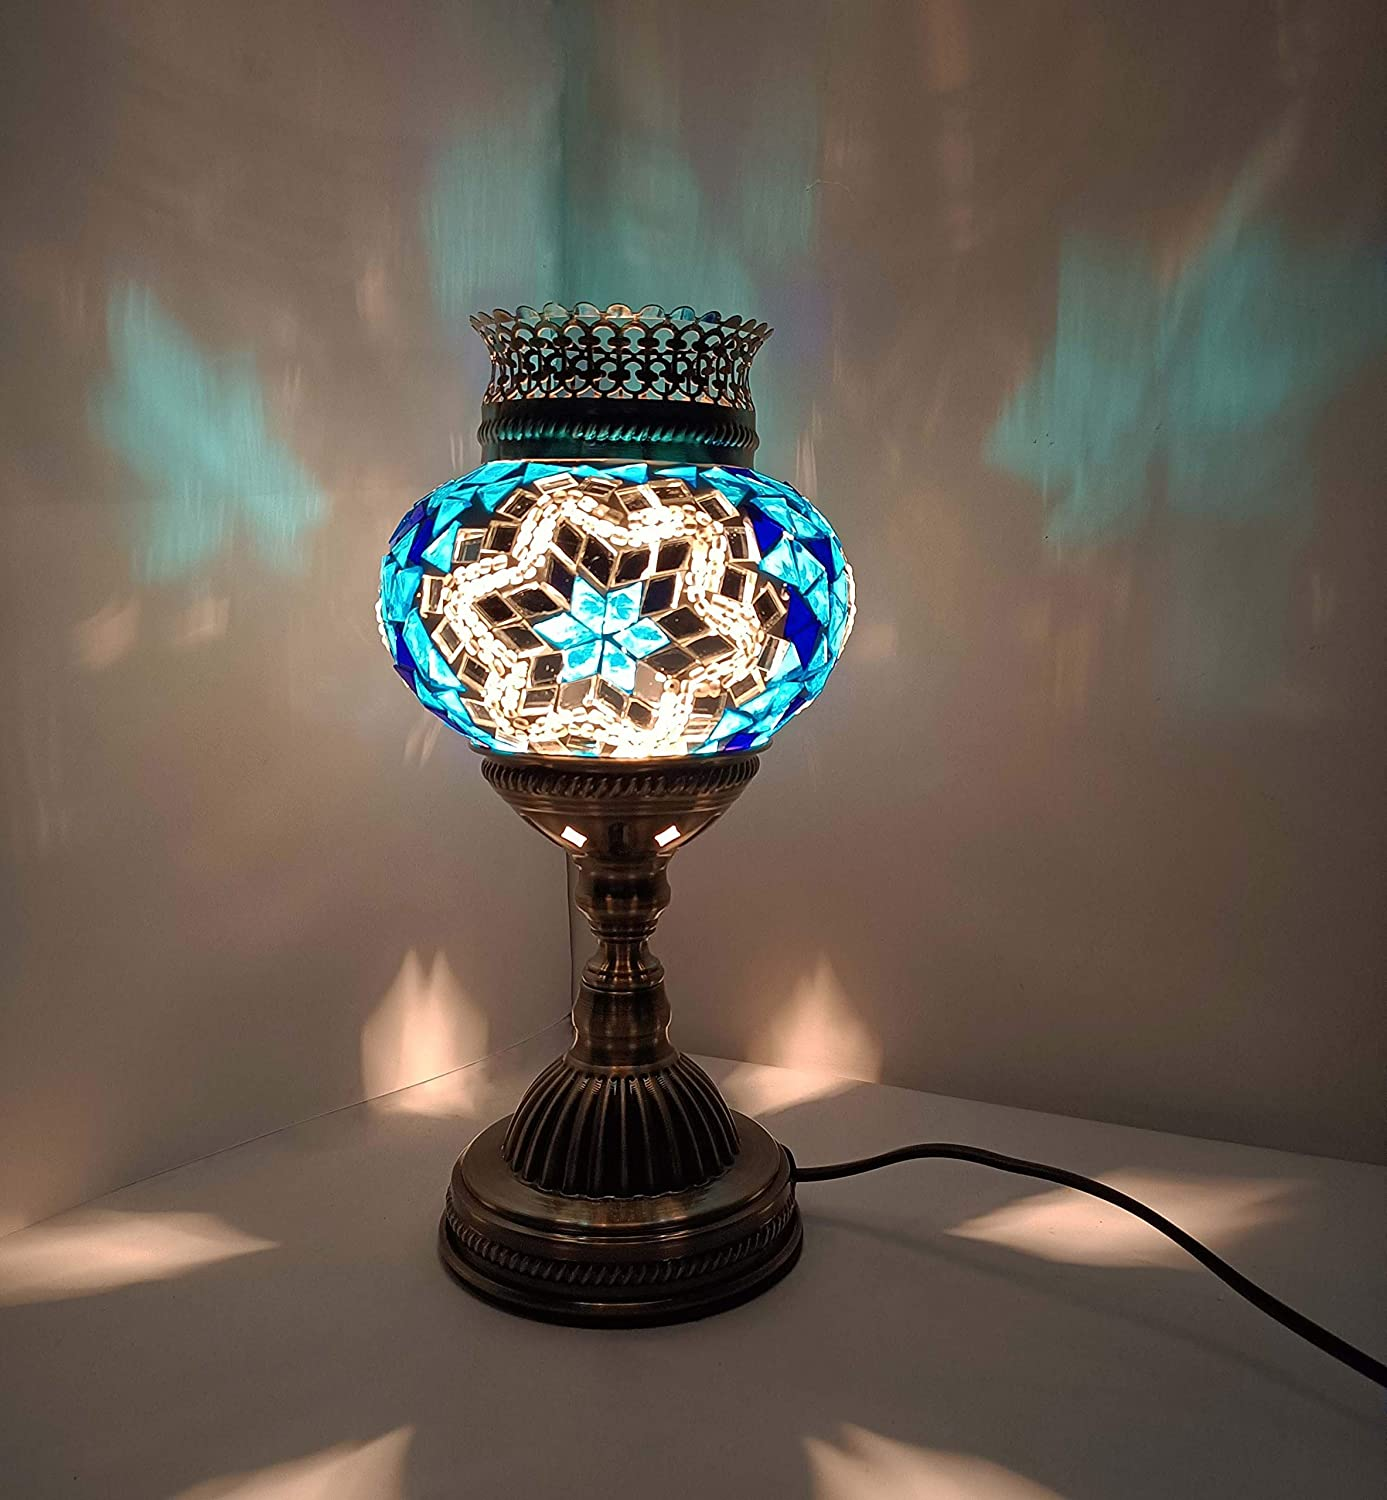 LIGHTIUM Moroccan/Turkish Style Mosaic Fragrance Table lamp   Handmade Vintage Crystal Lamp with Aroma Oil   Bohemian Decor/Stained Glass Mood Light   Bedside/Home Decoration   Blue & White